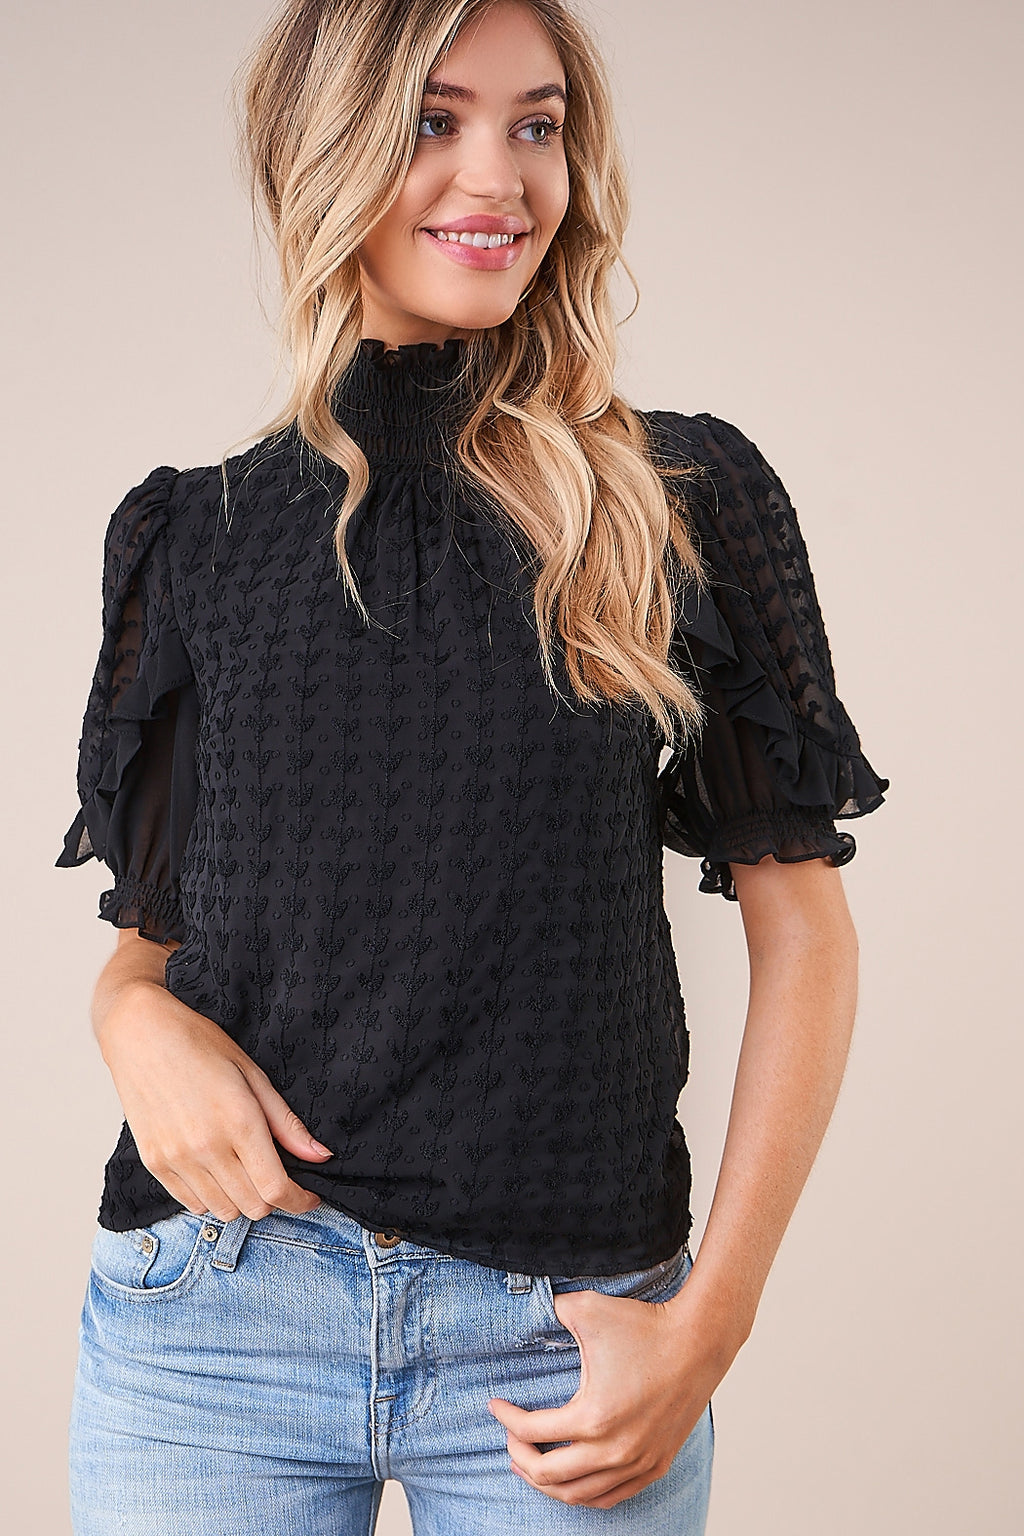 UNIKONCEPT: Lifestyle boutique; Image shows a mock neck short sleeved blouse by Sugar Lips. The Keep sake mock neck is a fully black top with transparent chiffon like fabric throughout. It features a puffed short sleeve and intricate detailing like polka dots and ruffles around the shoulders, elbow area and throughout the whole top.